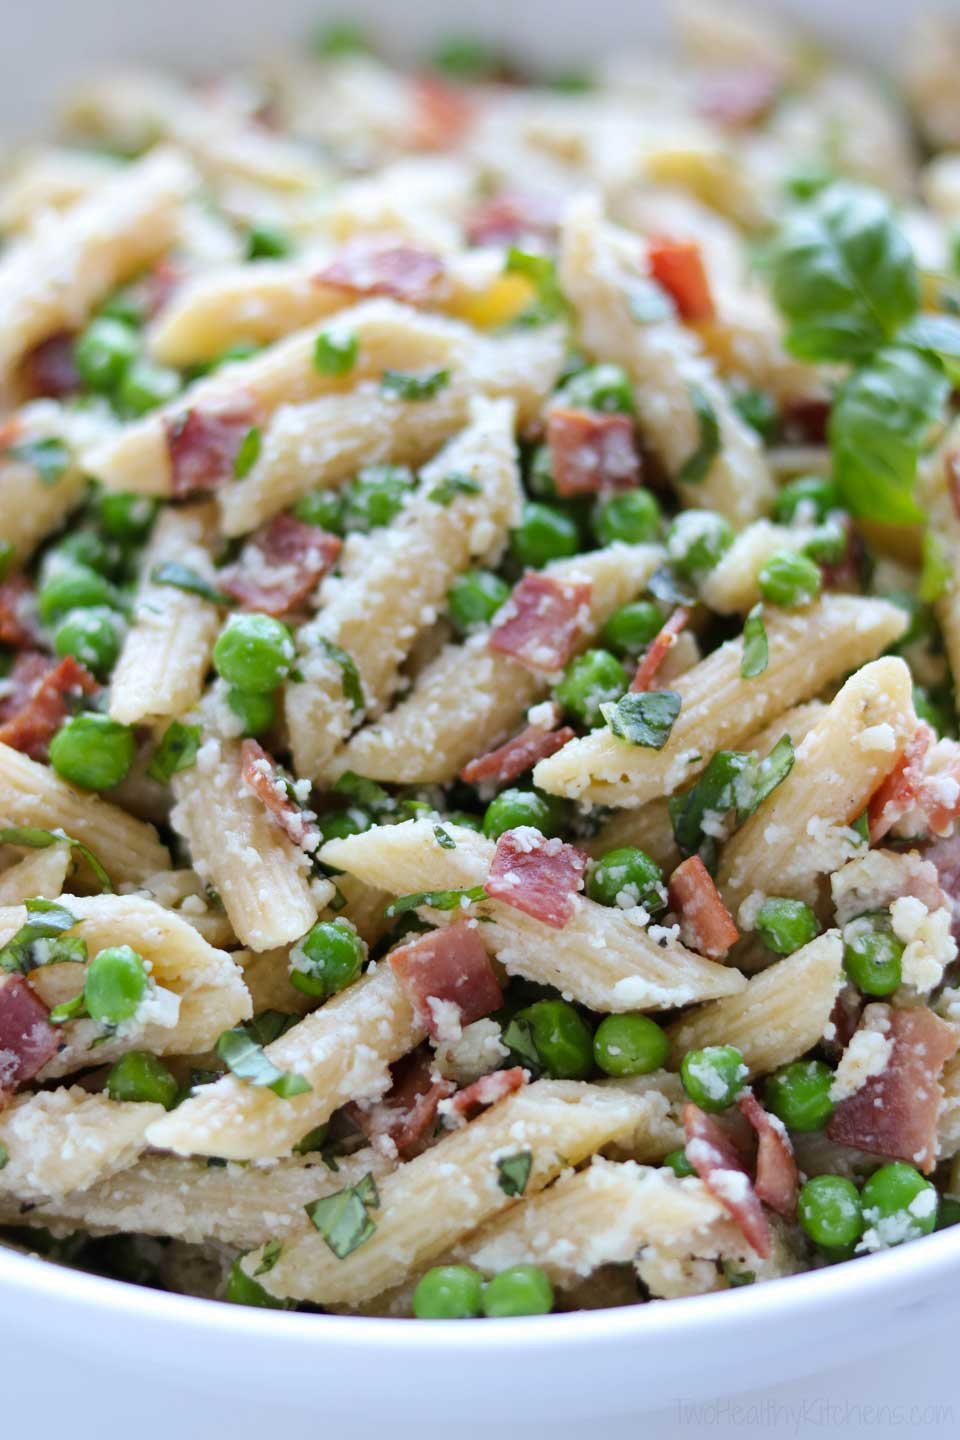 There are lots of great textures here, too – from toothsome al dente pasta to crispy bacon!